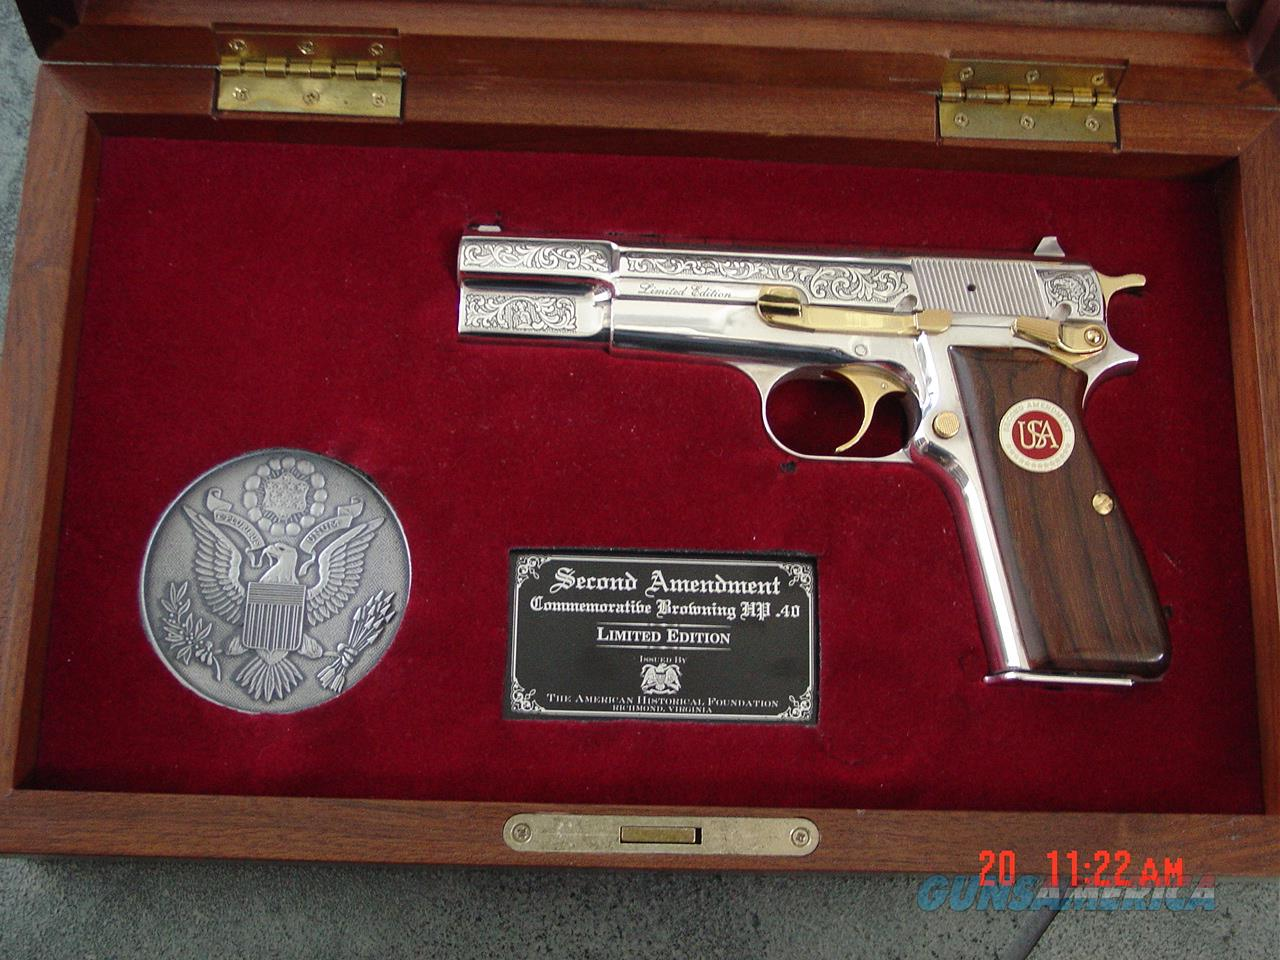 Browning Hi Power 40 S&W,engraved,nickel,2nd Amendment  Commemorative,gold accents,fitted pres.case,awesome & nicer in person      Guns > Pistols > Browning Pistols > Hi Power